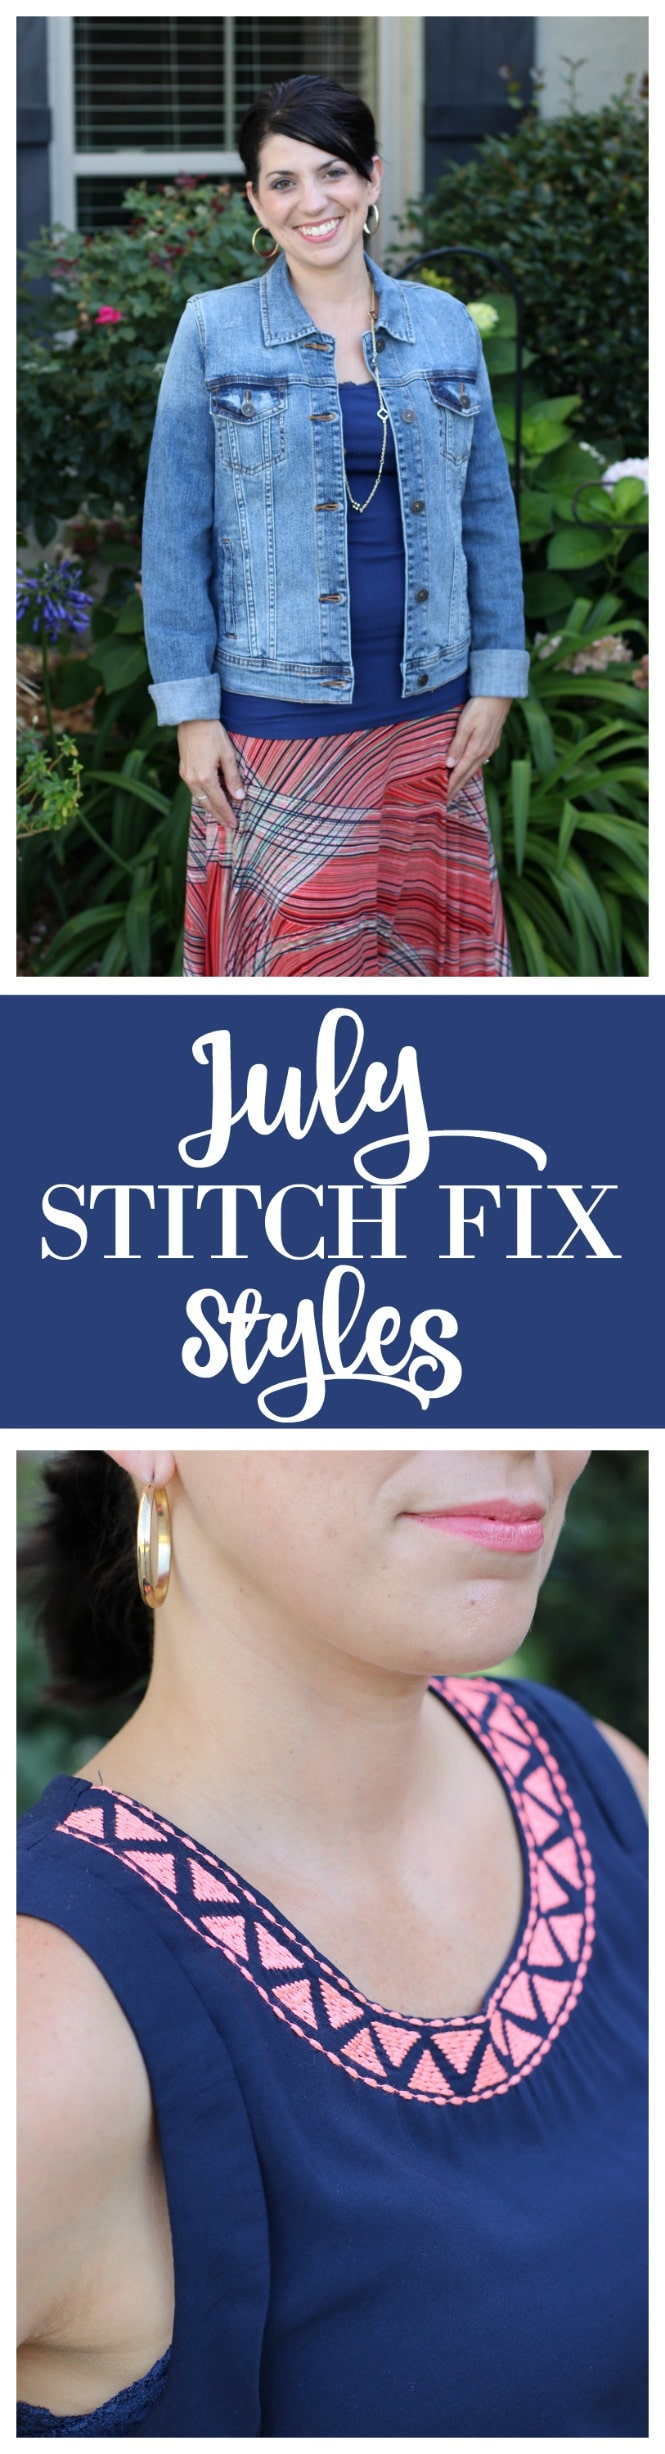 Stitch Fix Styles for July - Denim Morrie Boyfriend Jacket, Renee C Kira Printed Maxi Skirt, and Pixley Embroidered Top